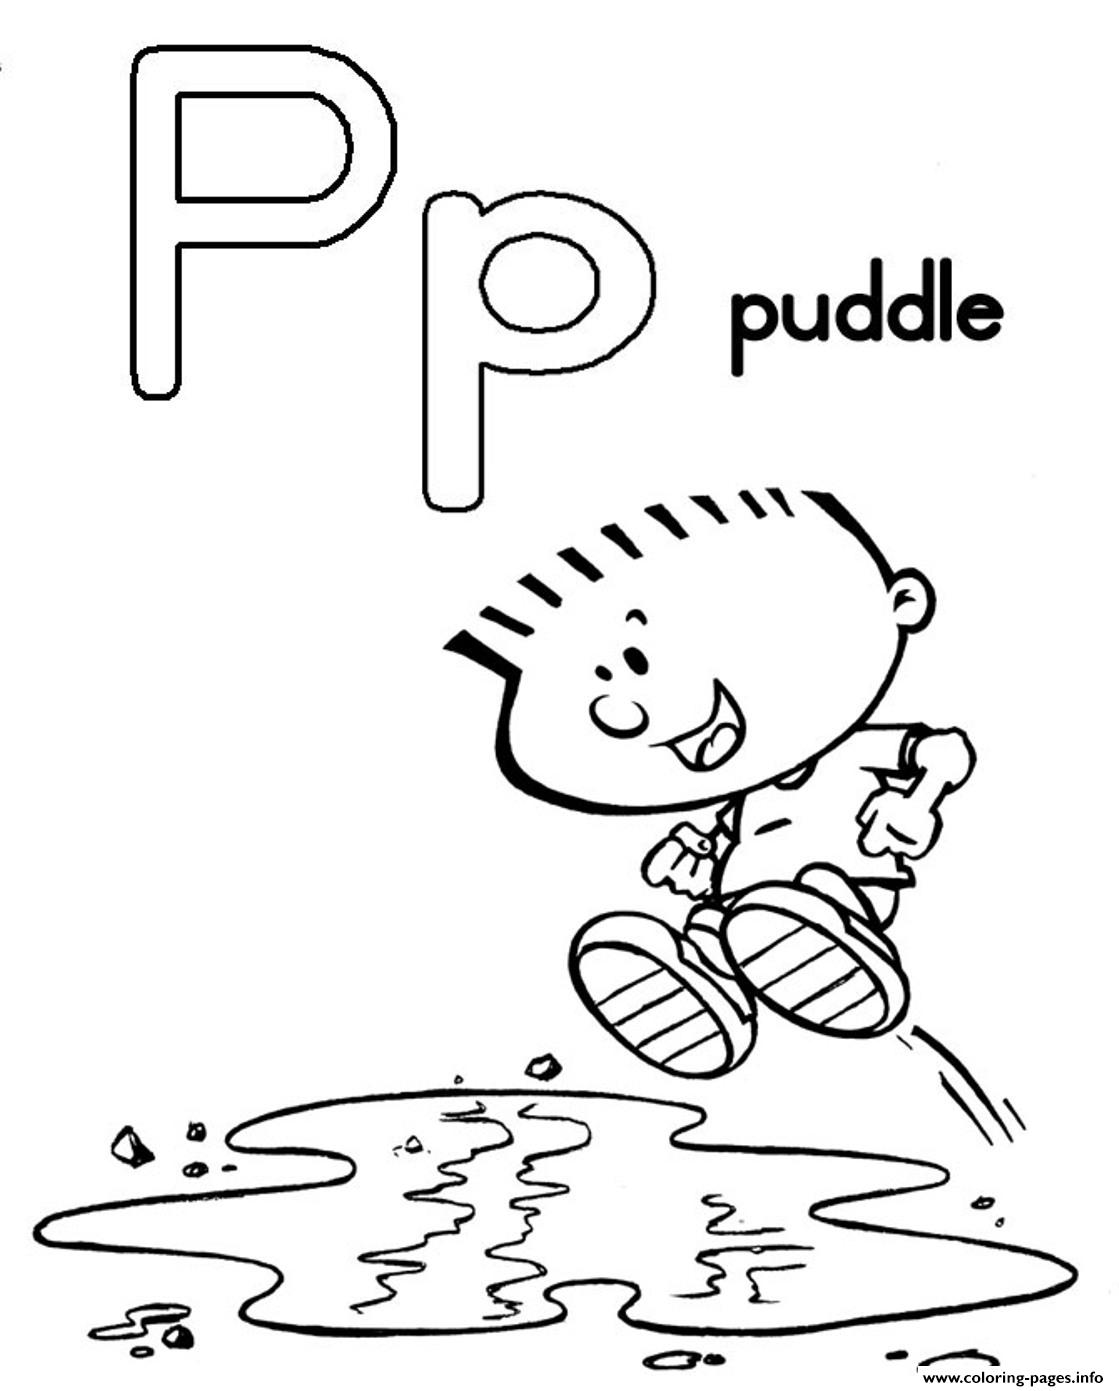 puddle free alphabet s04cd coloring pages printable